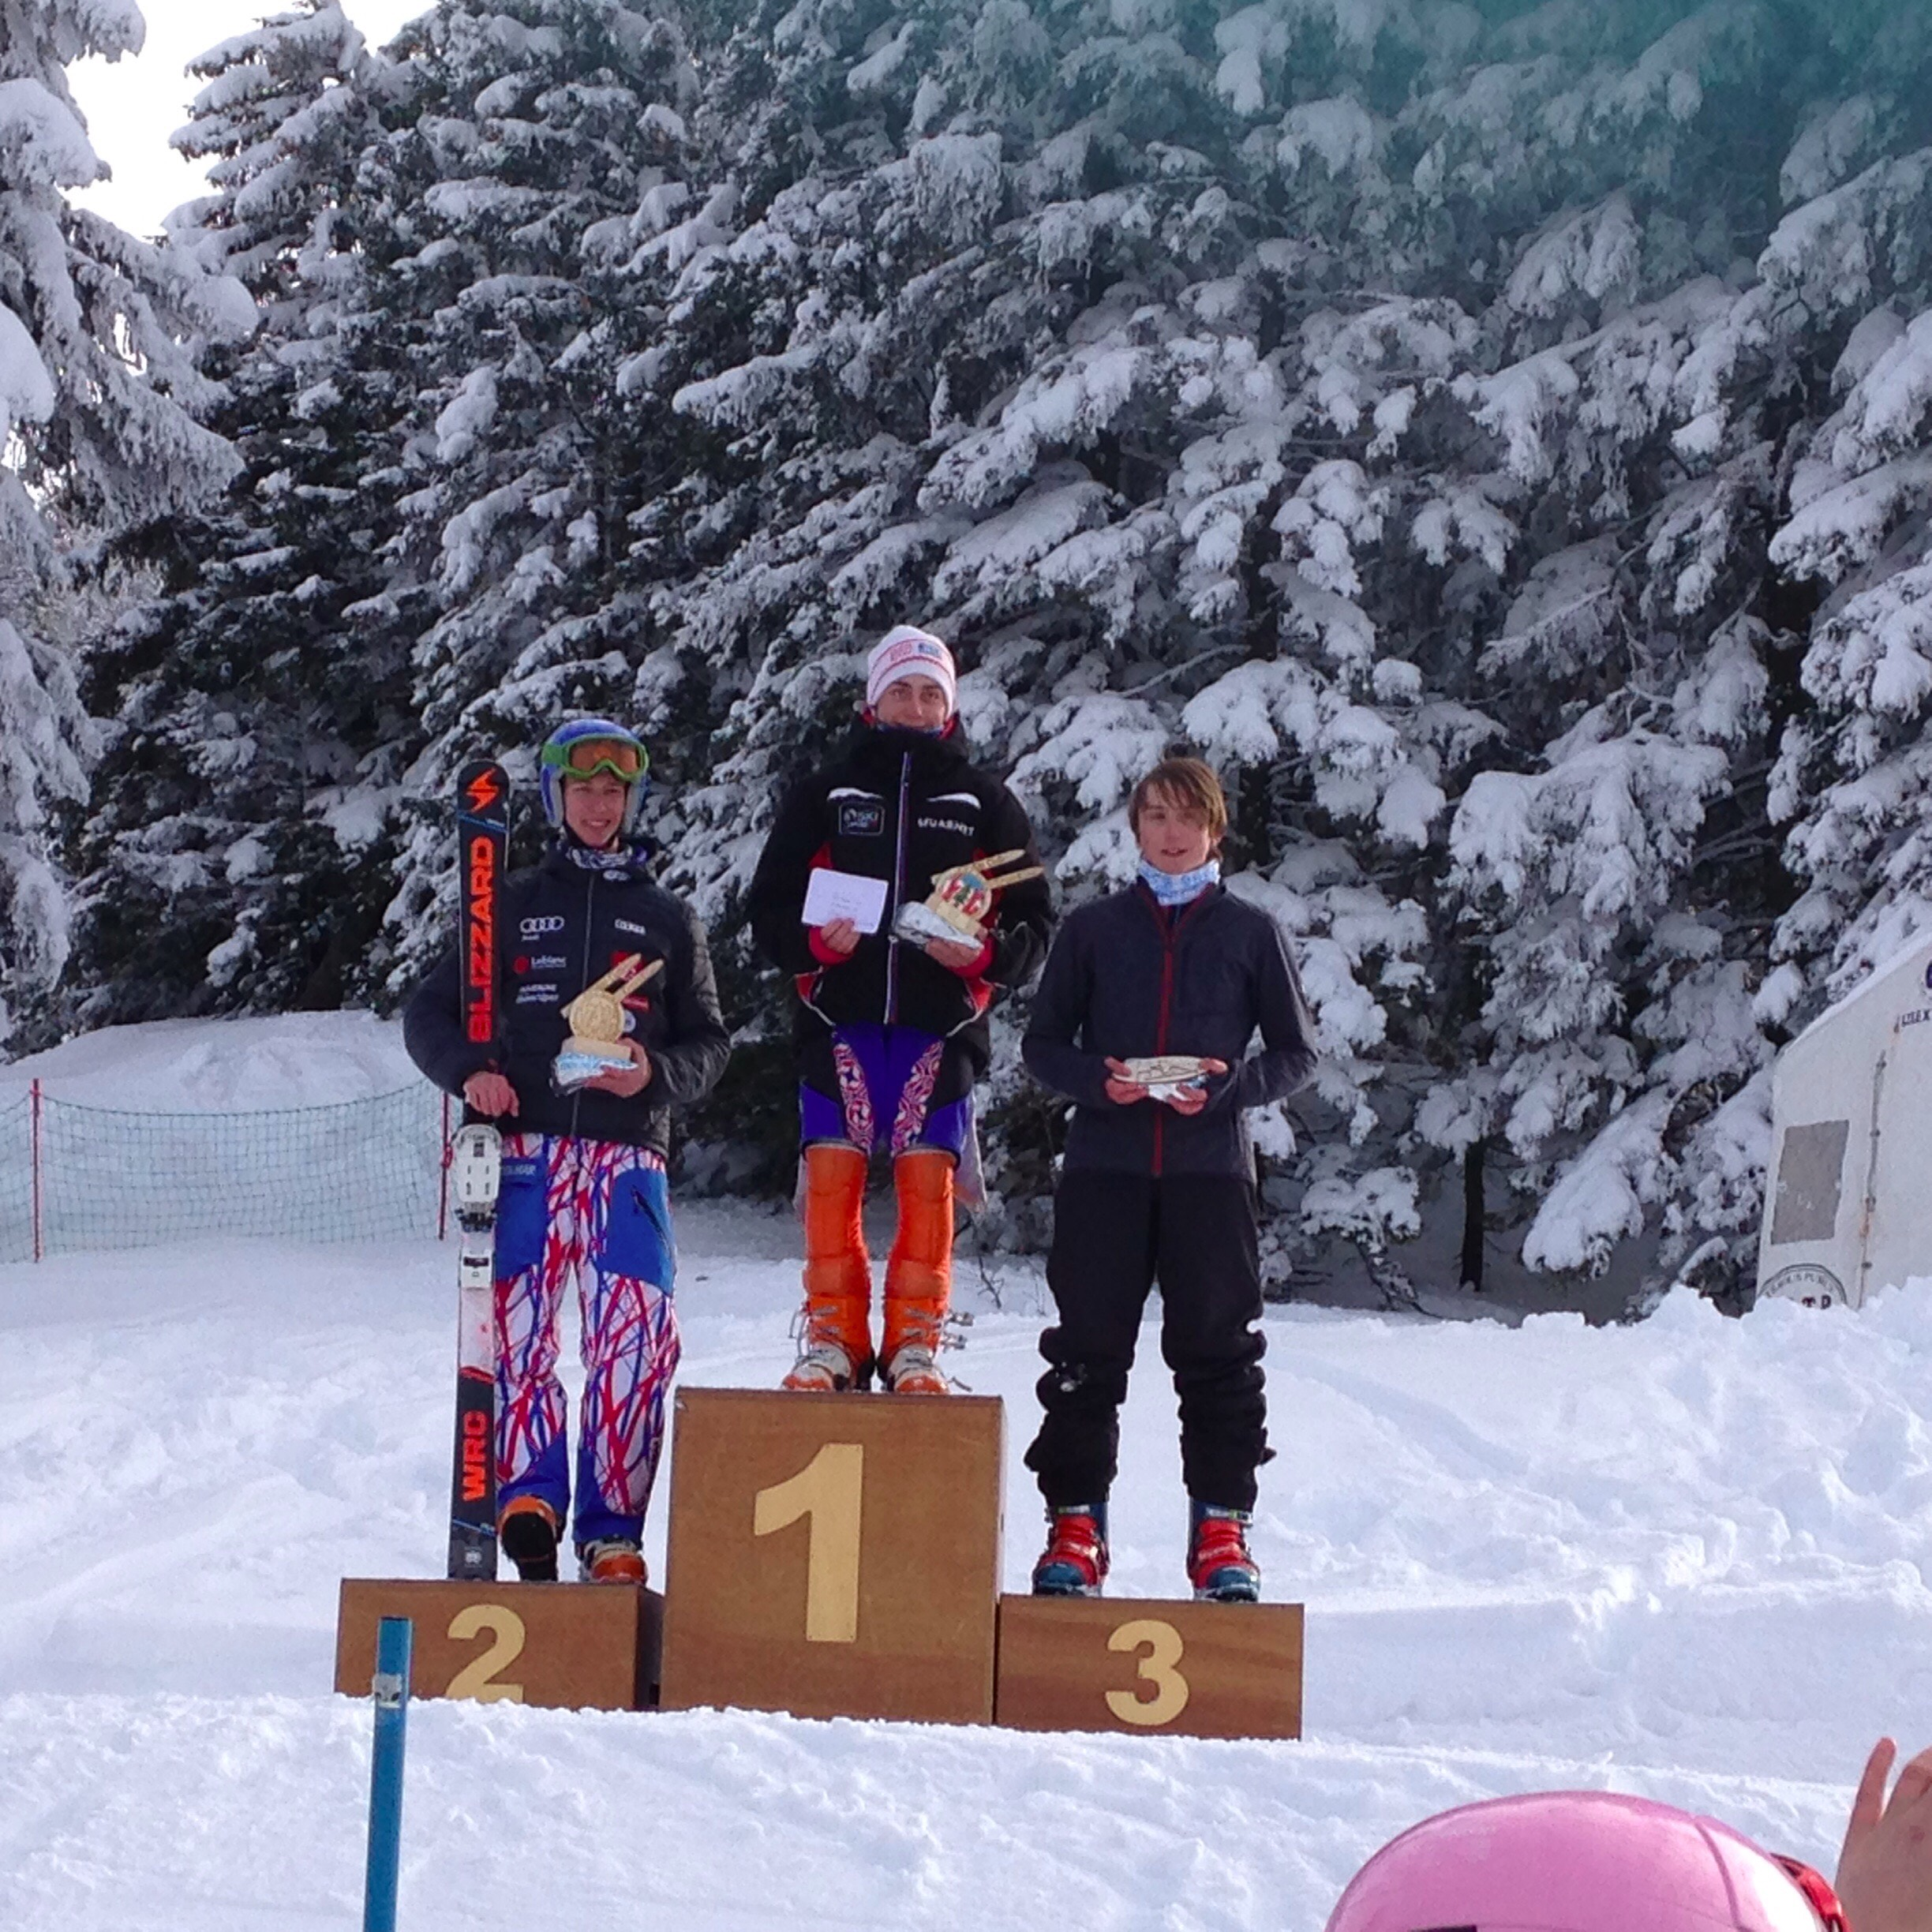 Ben Silva on the podium in Lelex Mont Jura, France